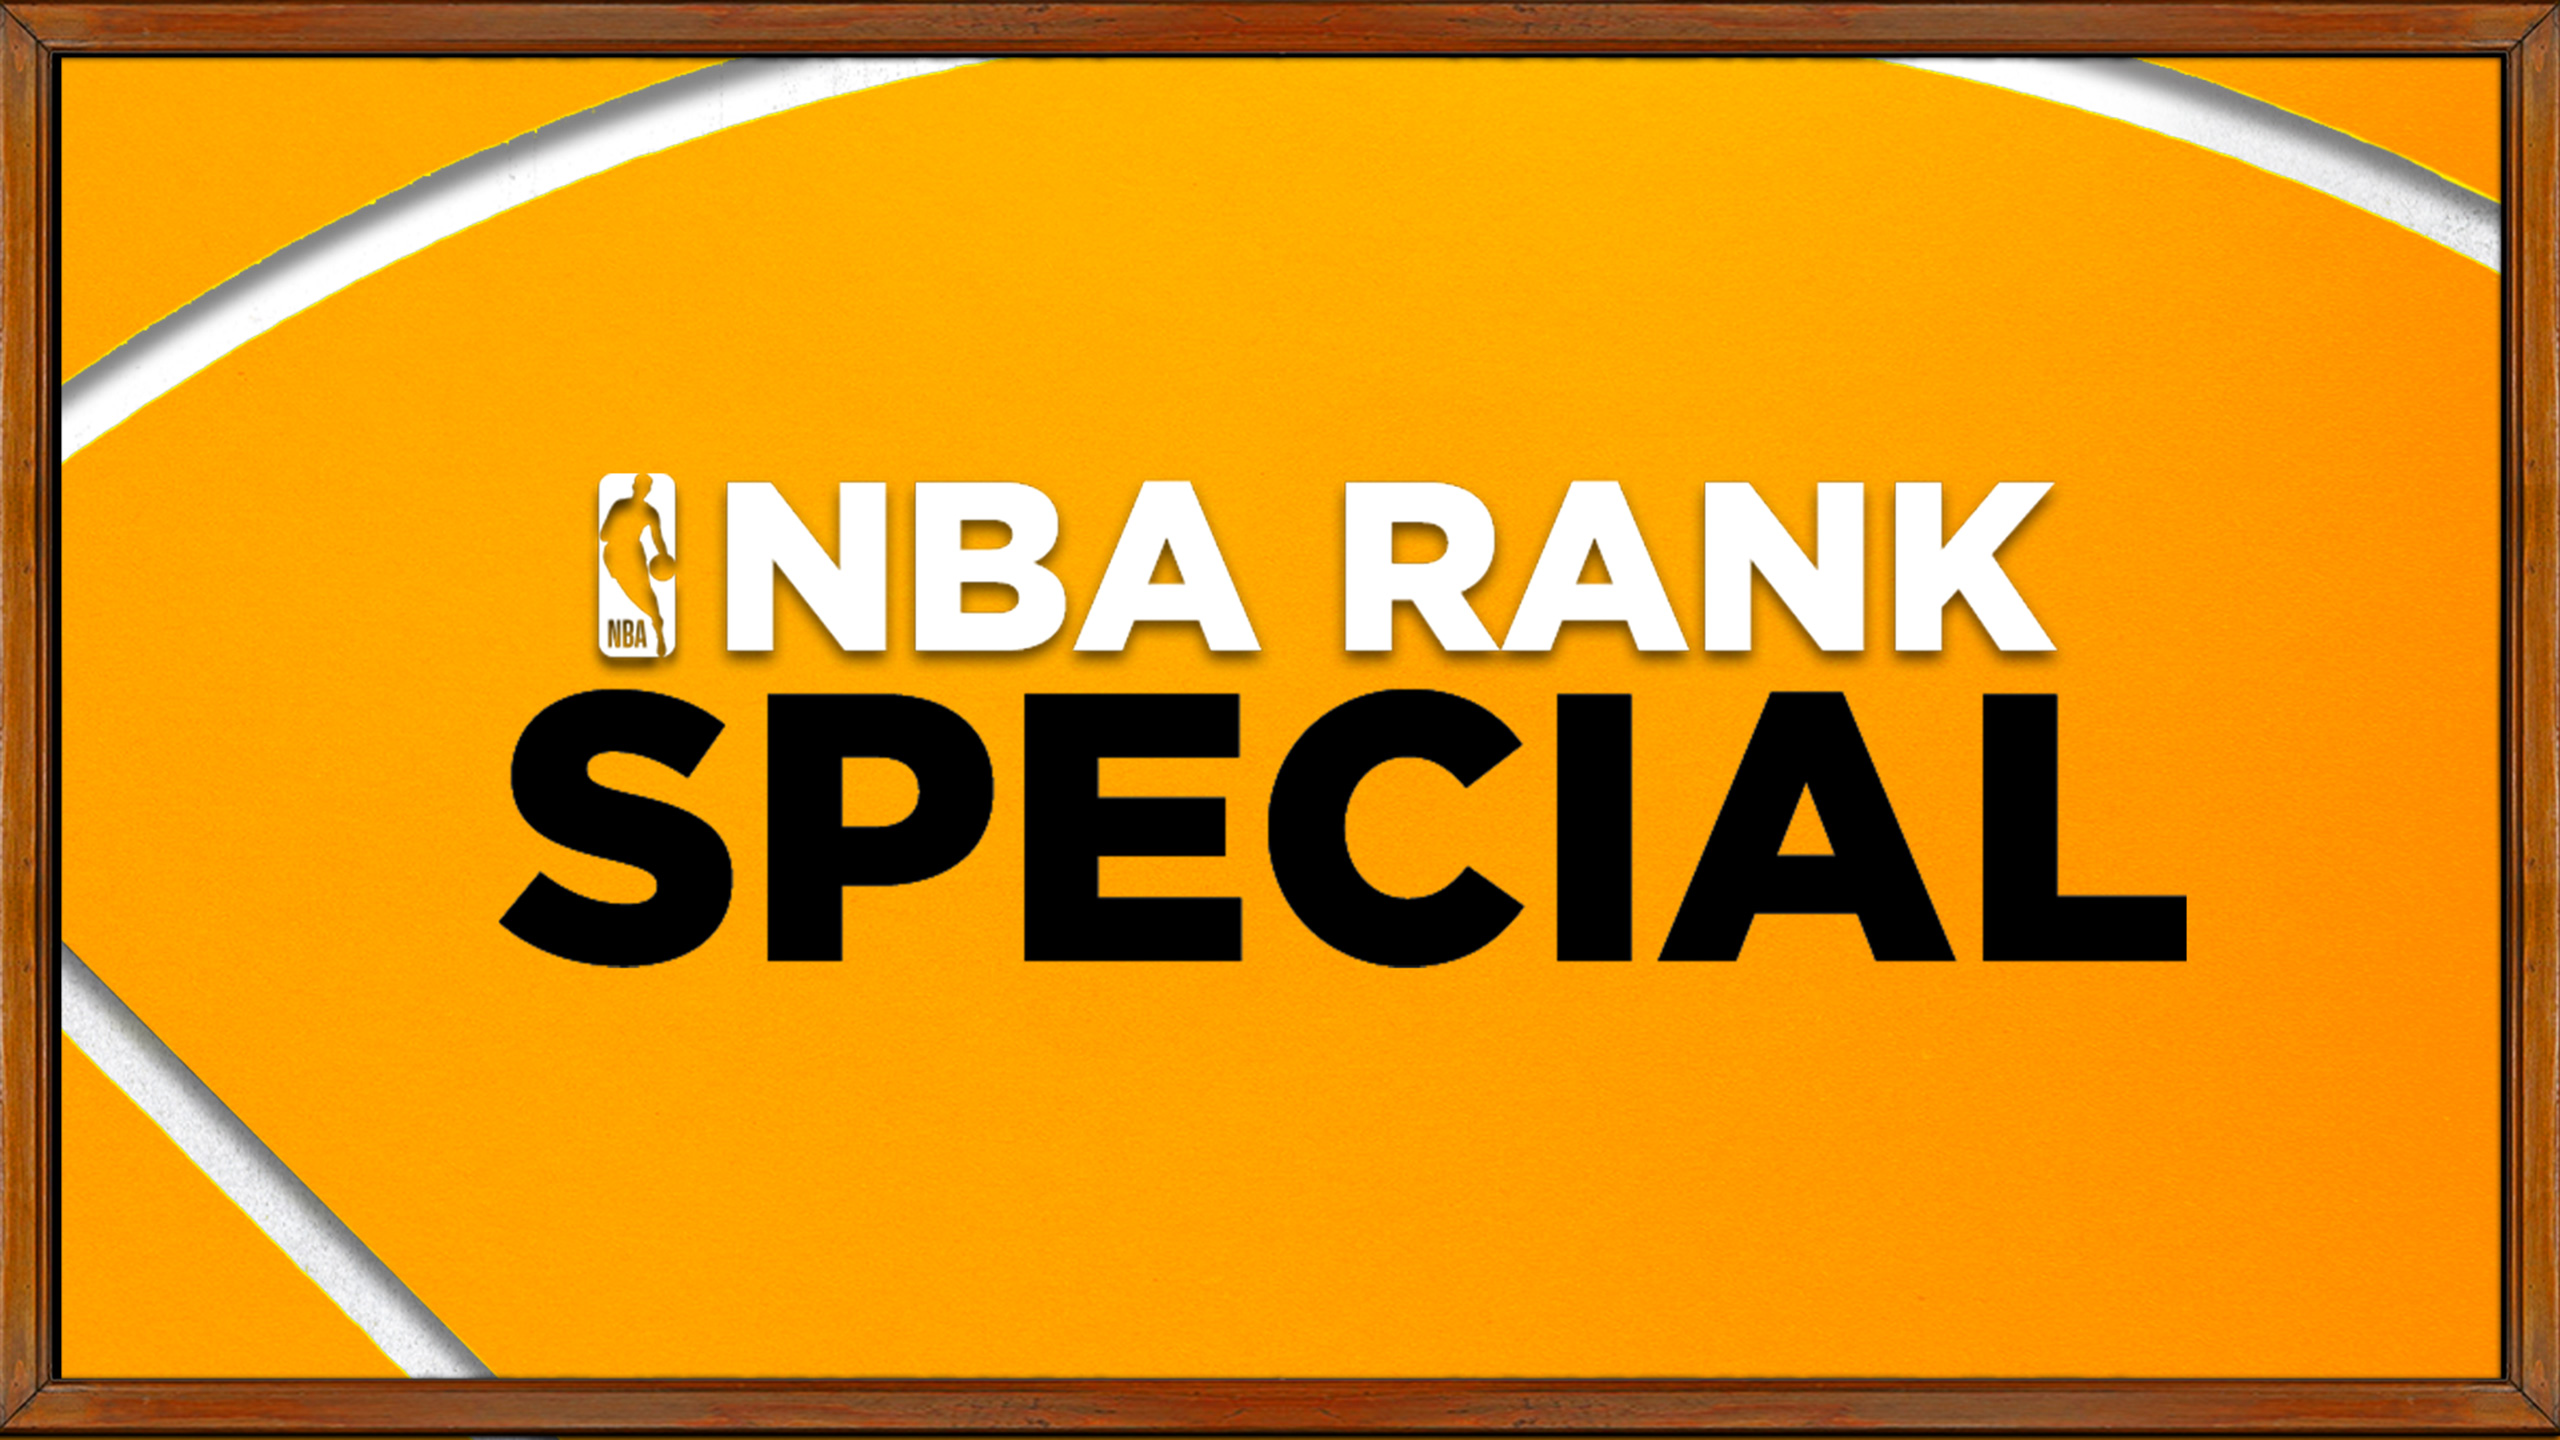 Thu, 9/20 - NBA Rank Special